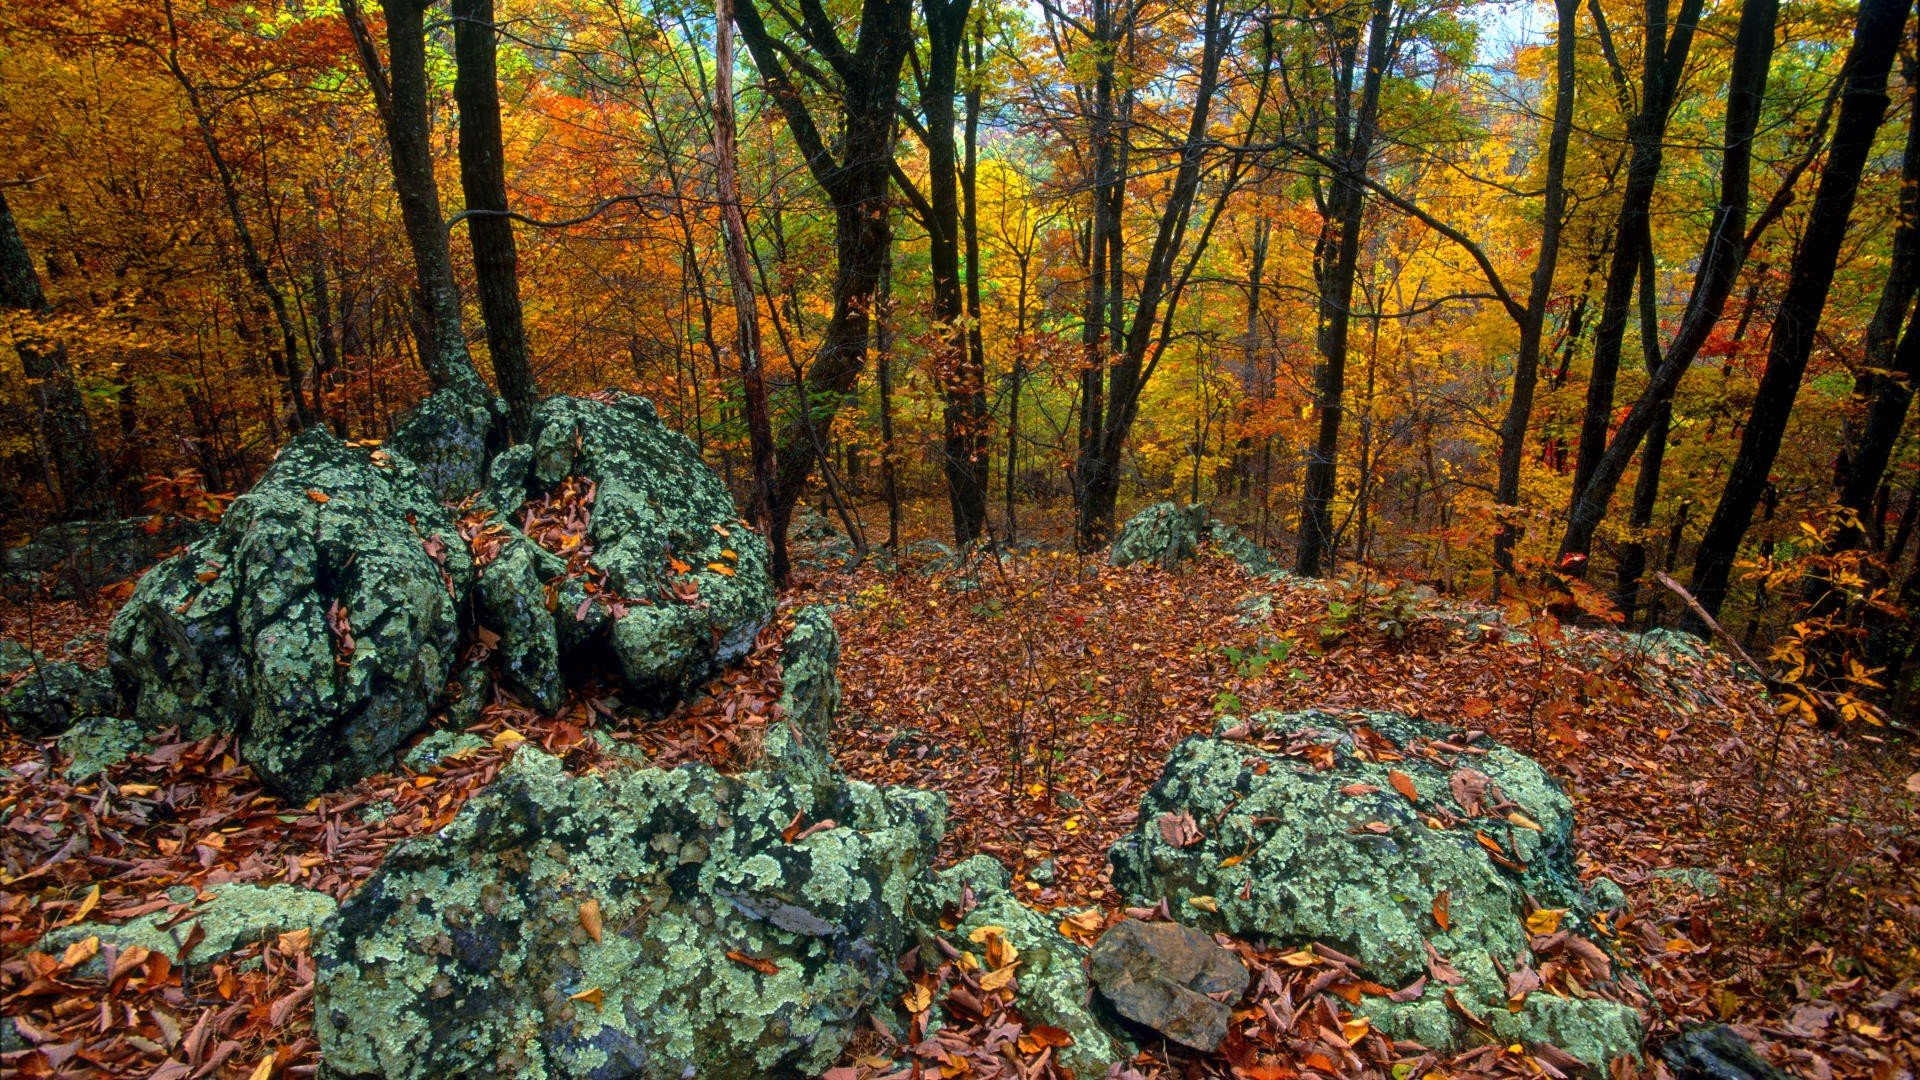 autumn leaf tree forest - photo #8